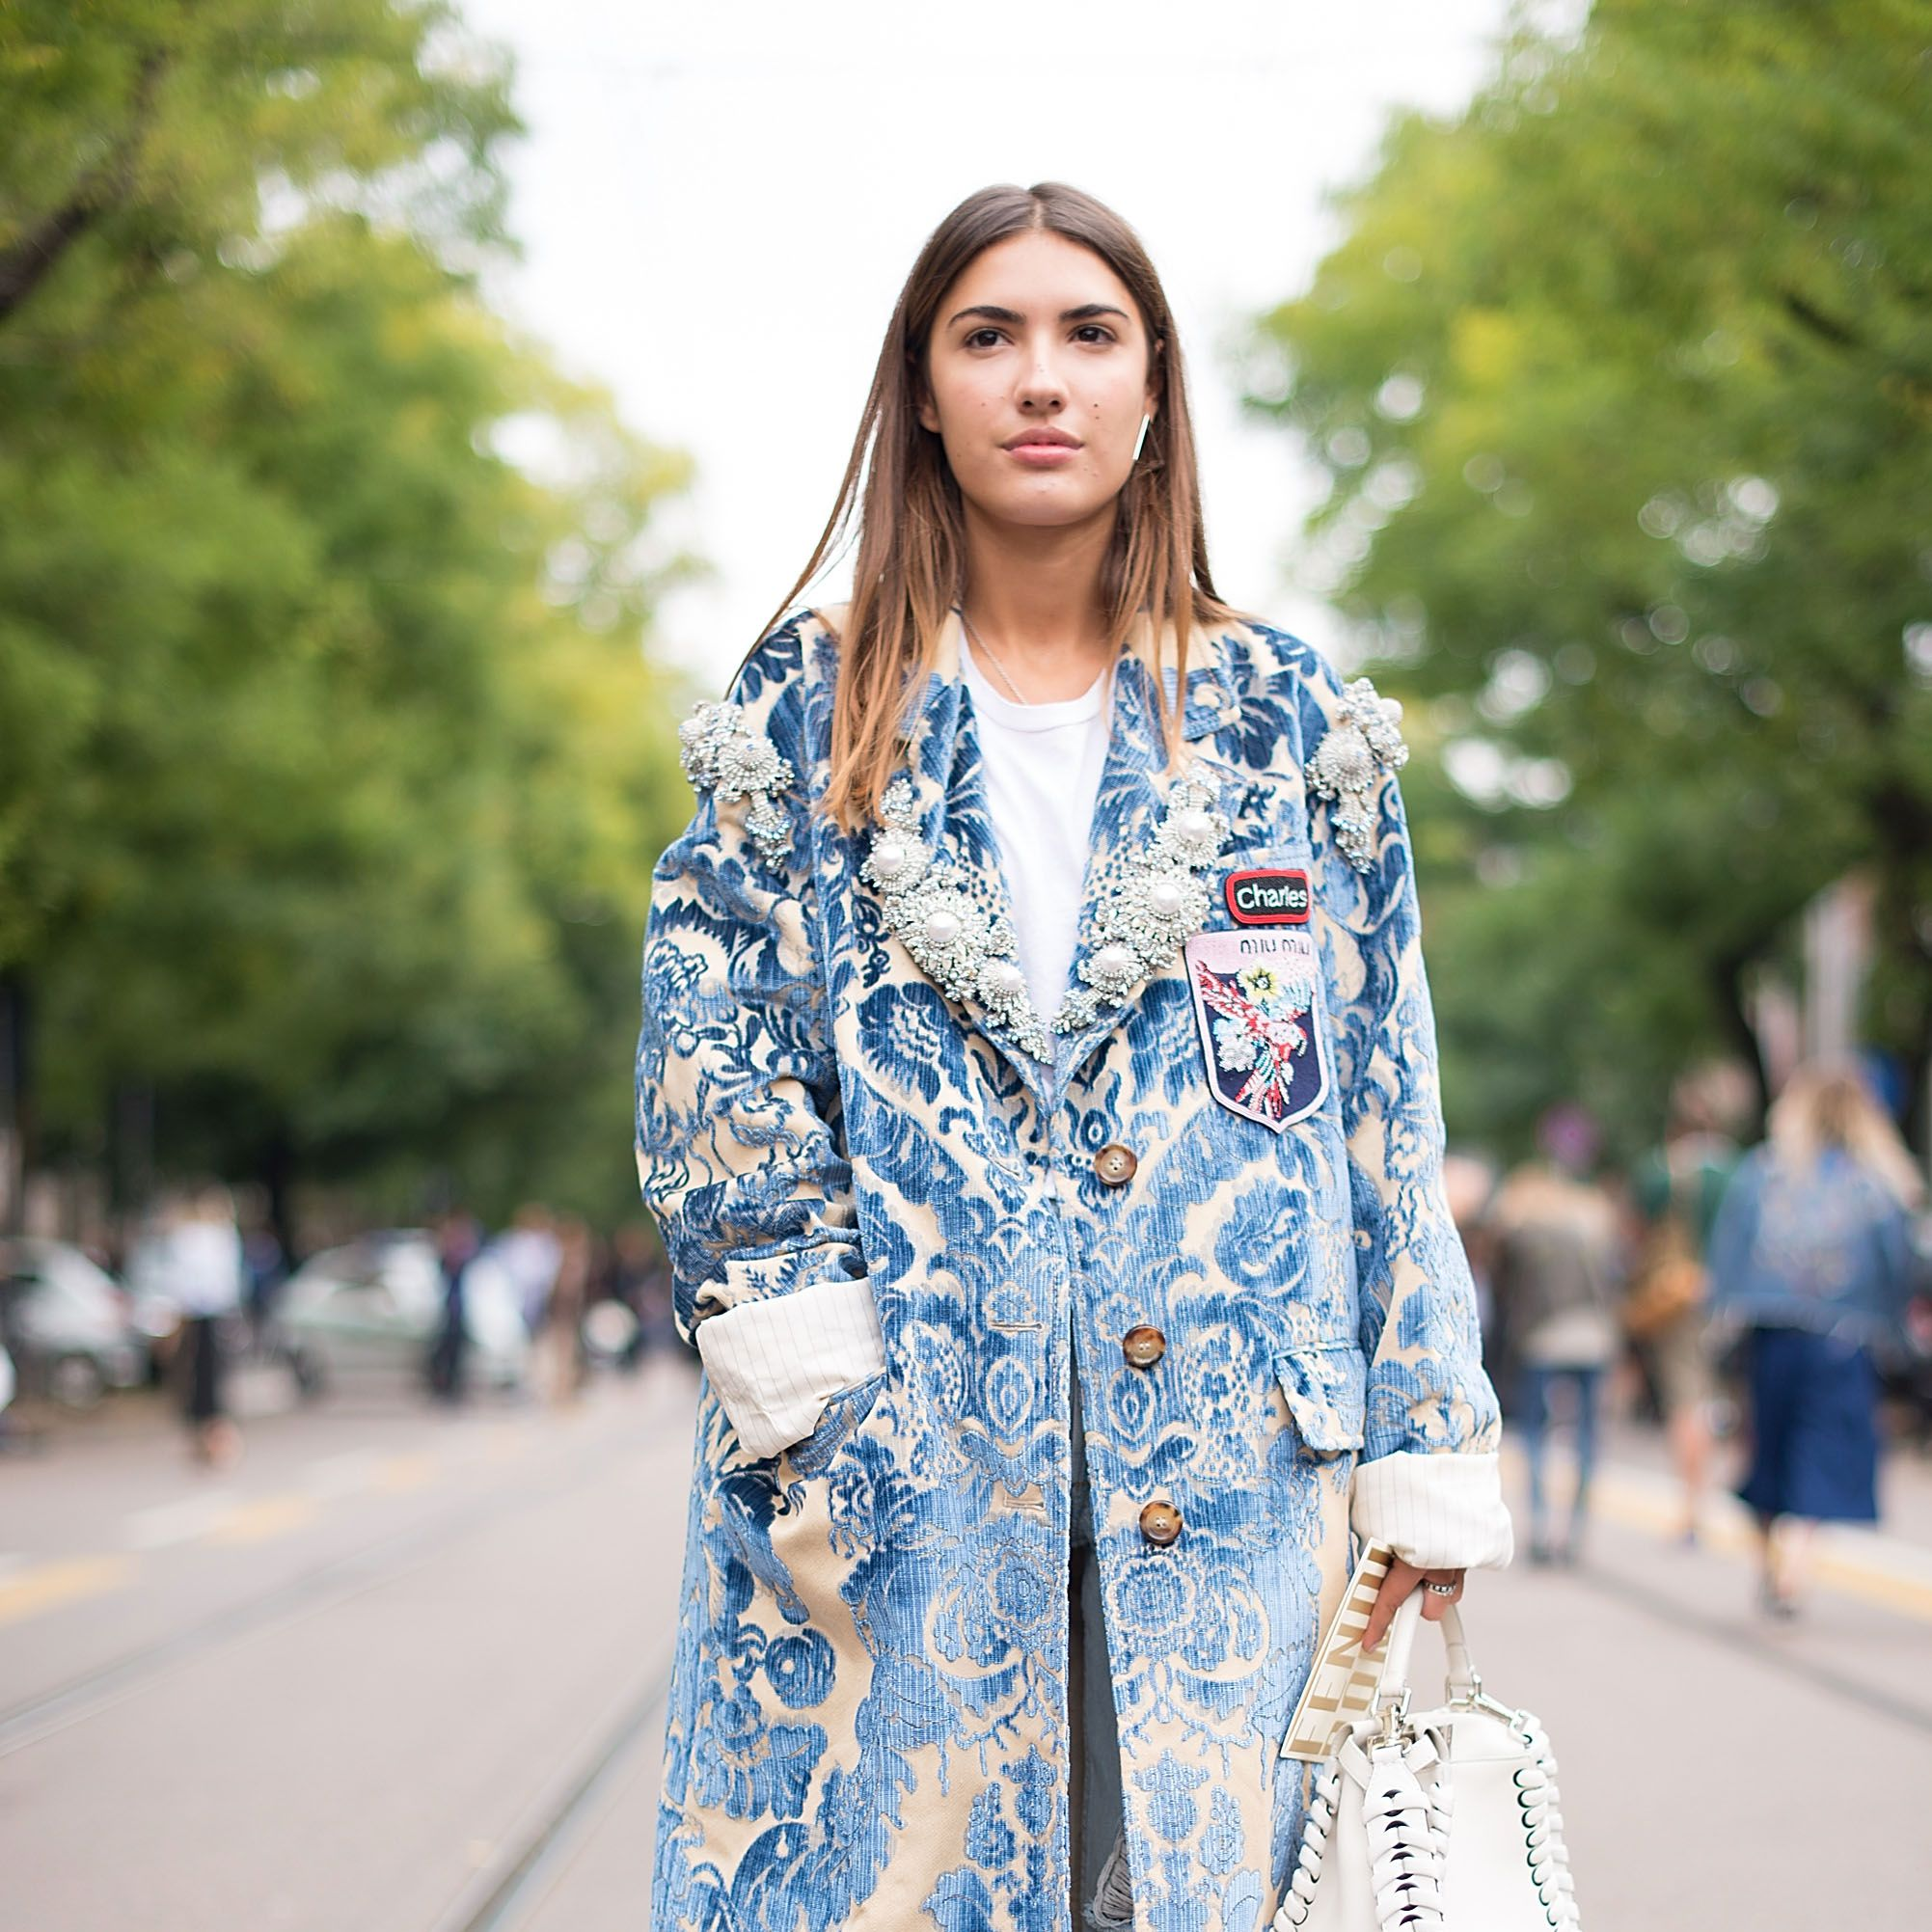 <p>As summer heat gives way to crisp autumn air, usher in the cooler temps with a chic new coat. This season, romantic tapestry styles are having a moment.&nbsp&#x3B;</p>